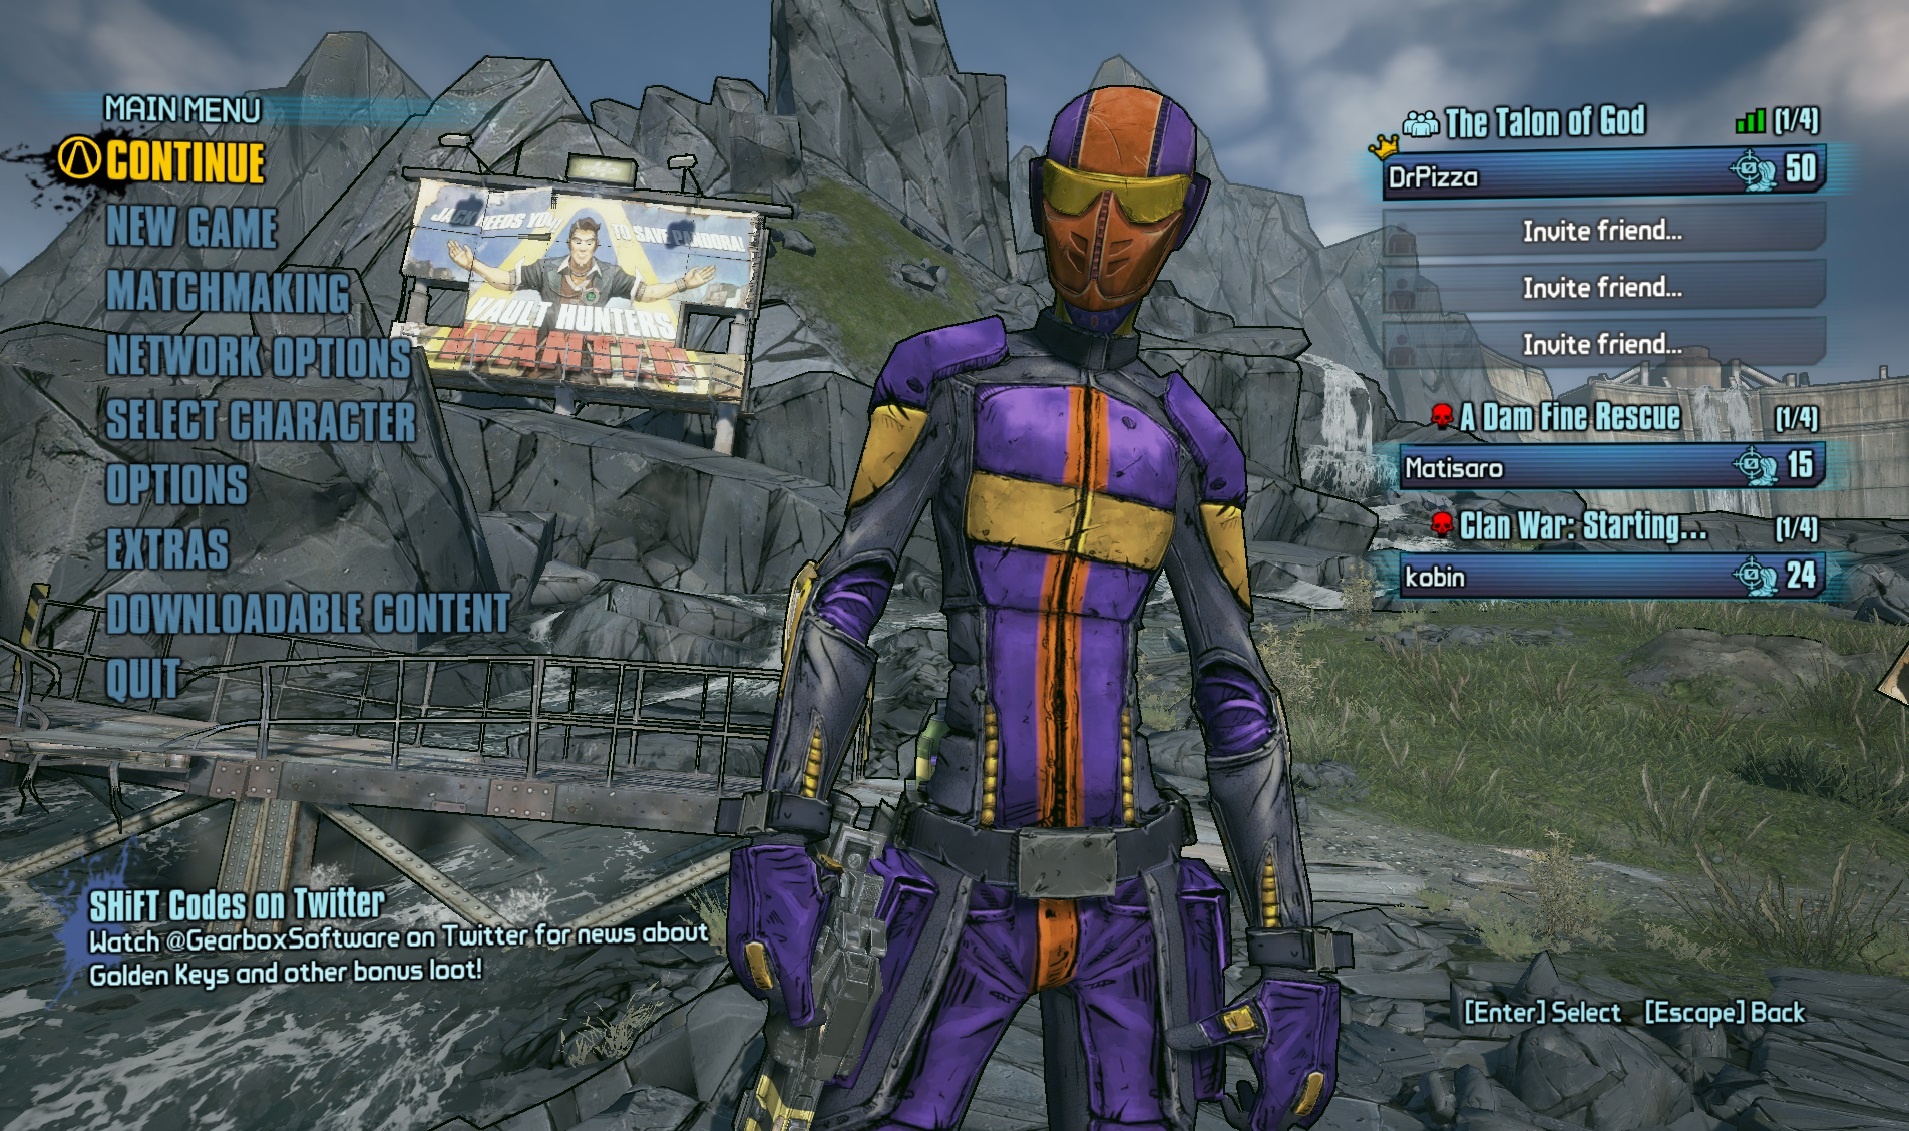 This is my assassin, Zer0, resplendent in his purple magnificence.